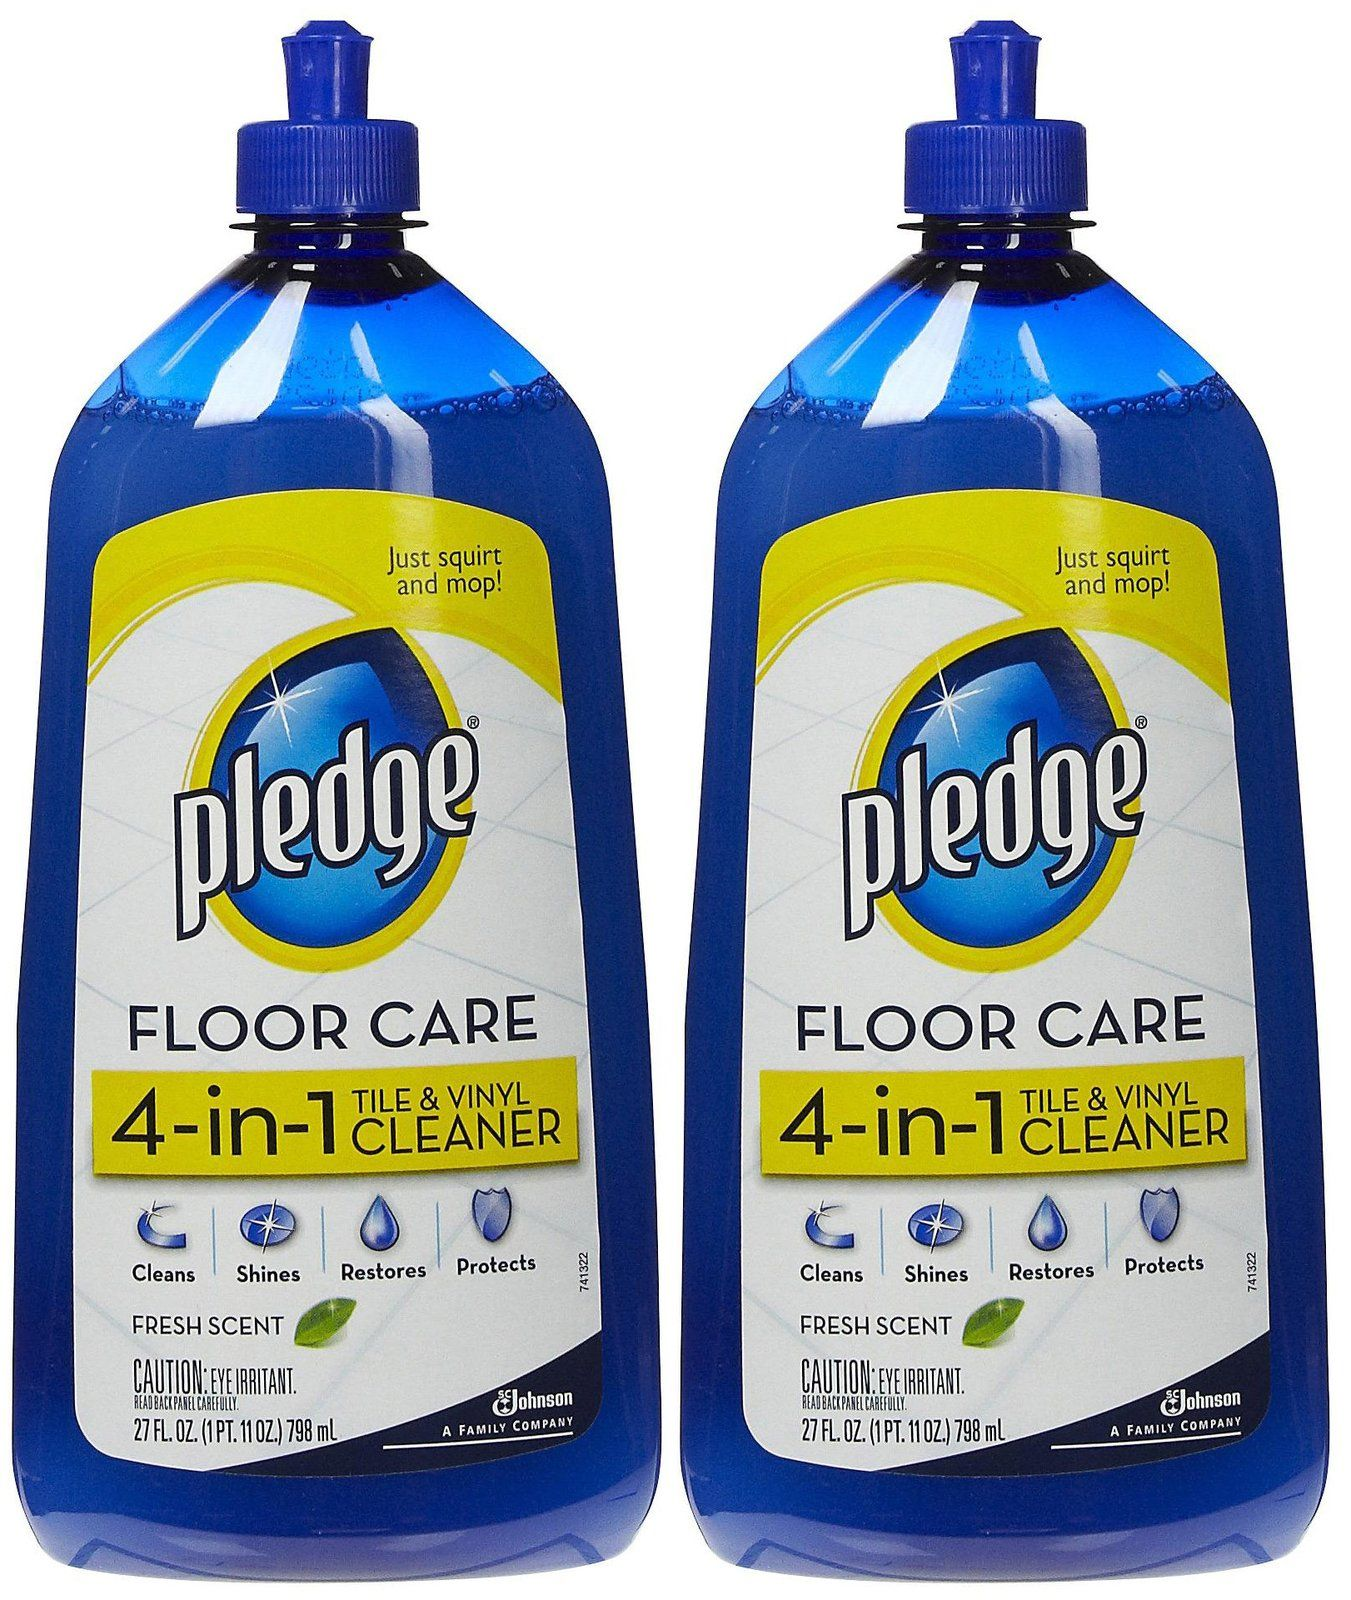 Vinyl floor cleaning products bing images floor cleaner vinyl floor cleaning products bing images dailygadgetfo Choice Image